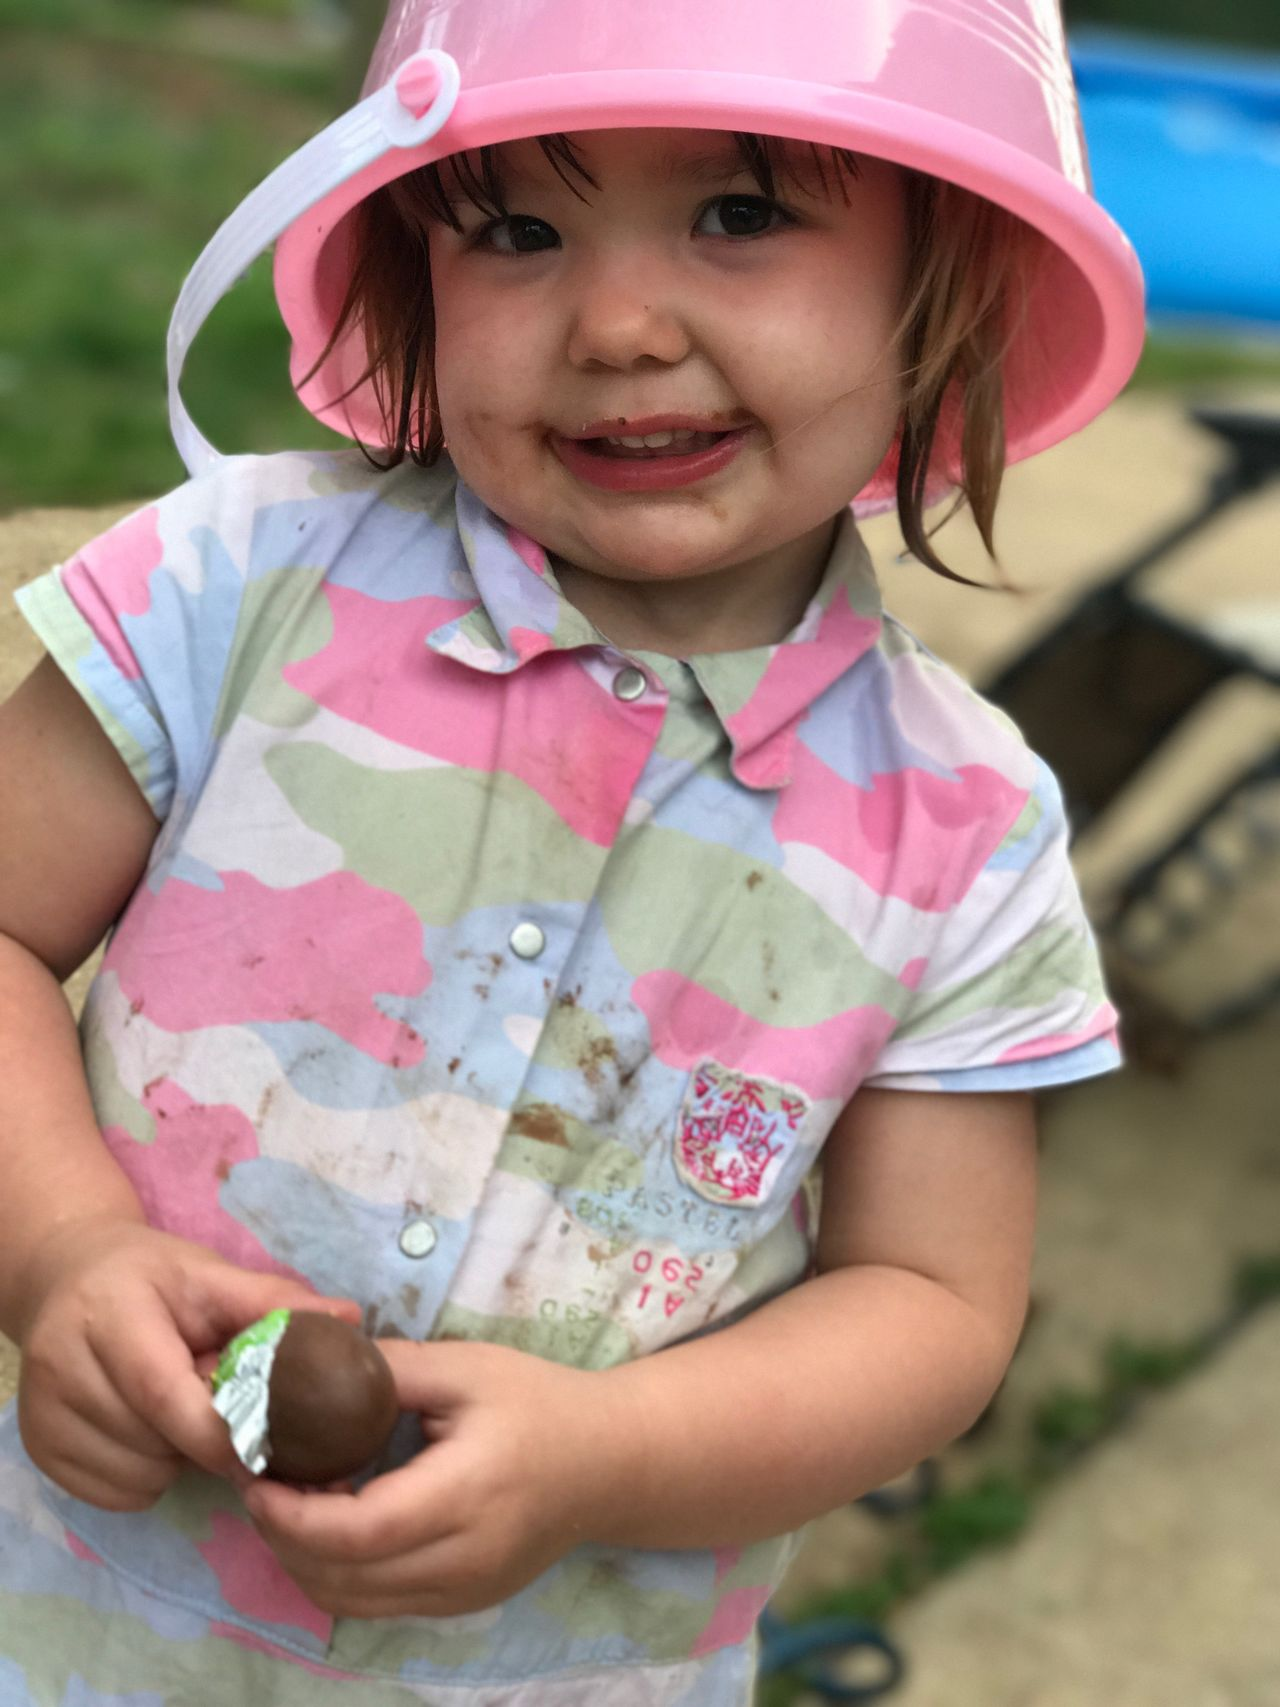 Toddler enjoying her candy with pink pail on head Outdoors Cute Smiling Close-up Happiness Low Angle View The Portraitist - 2017 EyeEm Awards